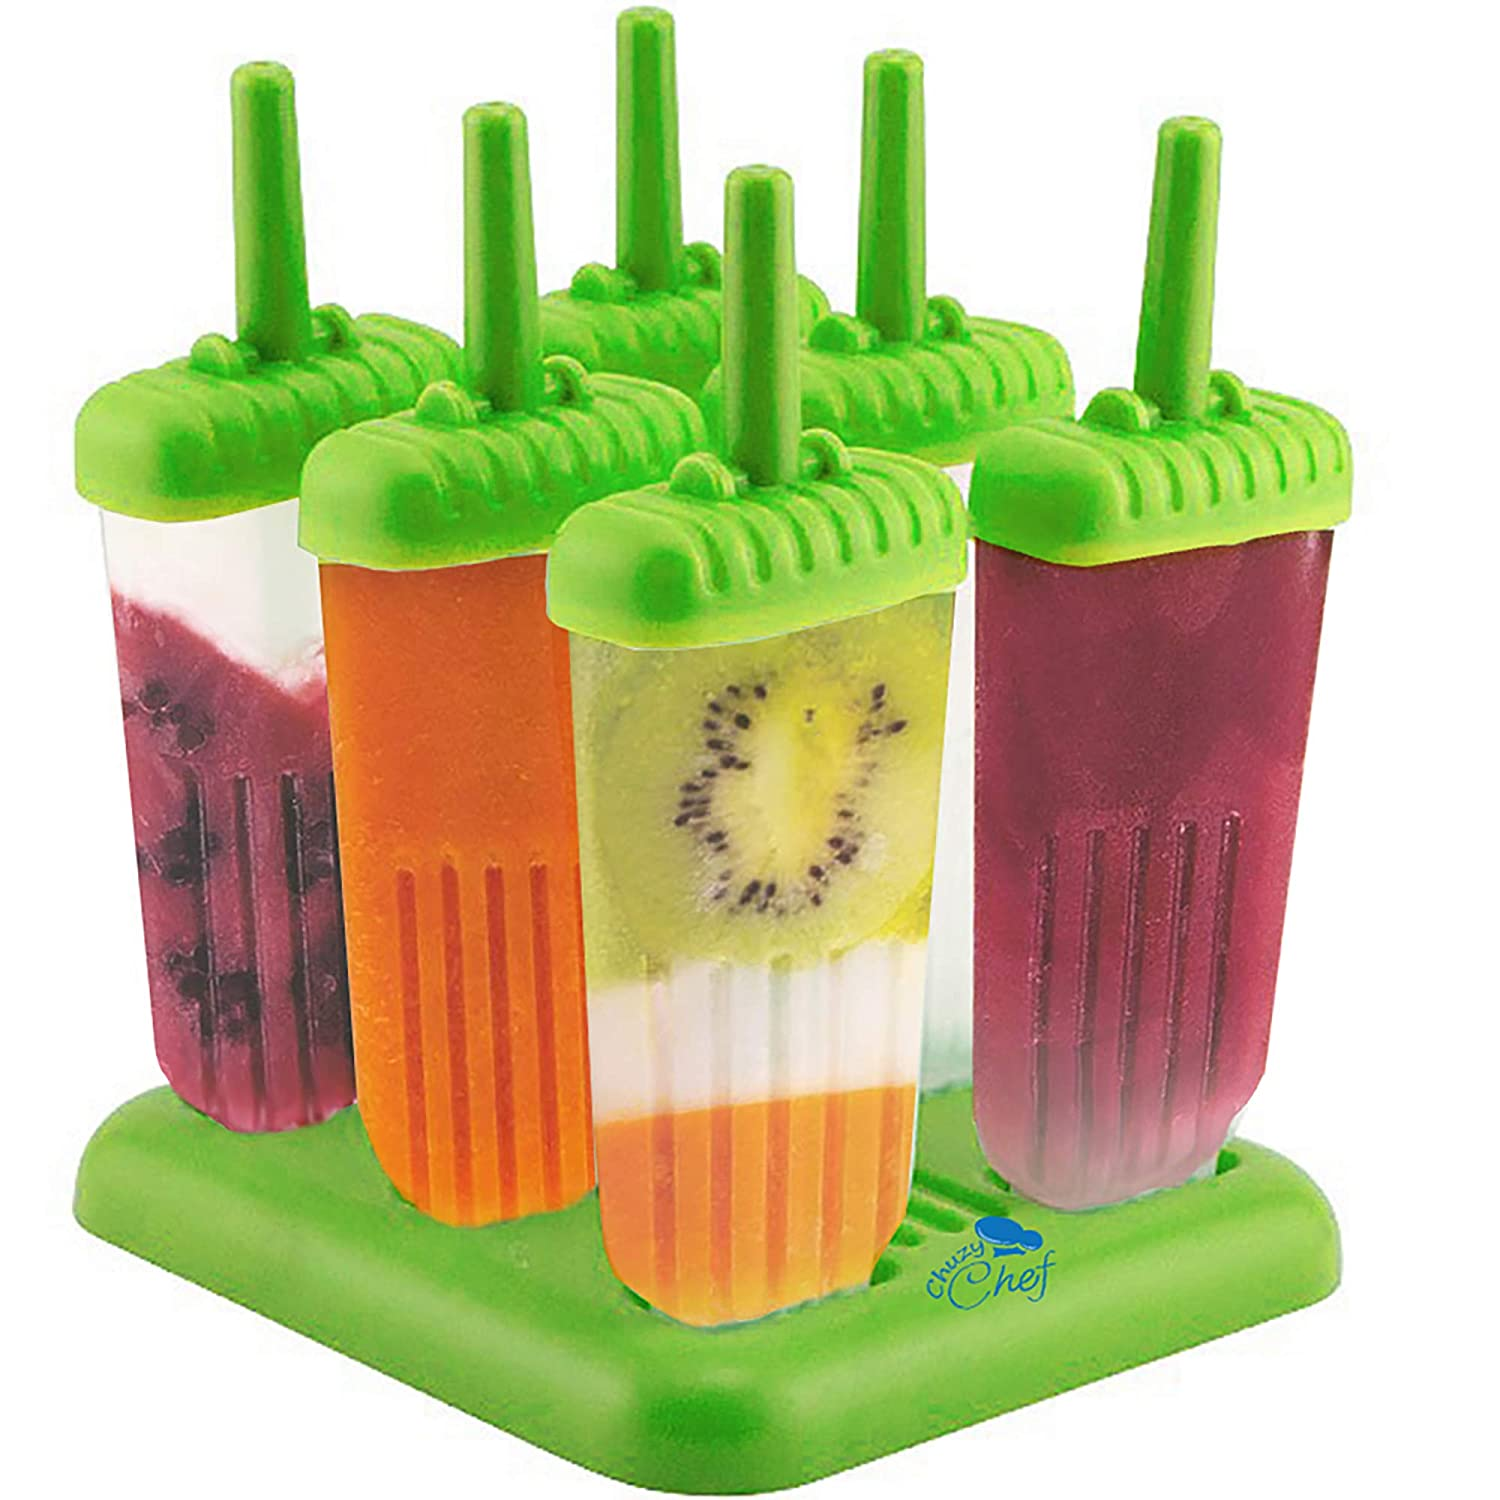 Popsicle Ice Mold Maker Set - 6 Pack BPA Free Reusable Ice Cream DIY Pop Molds Holders With Tray & Sticks Popsicles Maker Fun for Kids and Adults Great Gift for Party Indoor & Outdoor Green Chuzy Chef